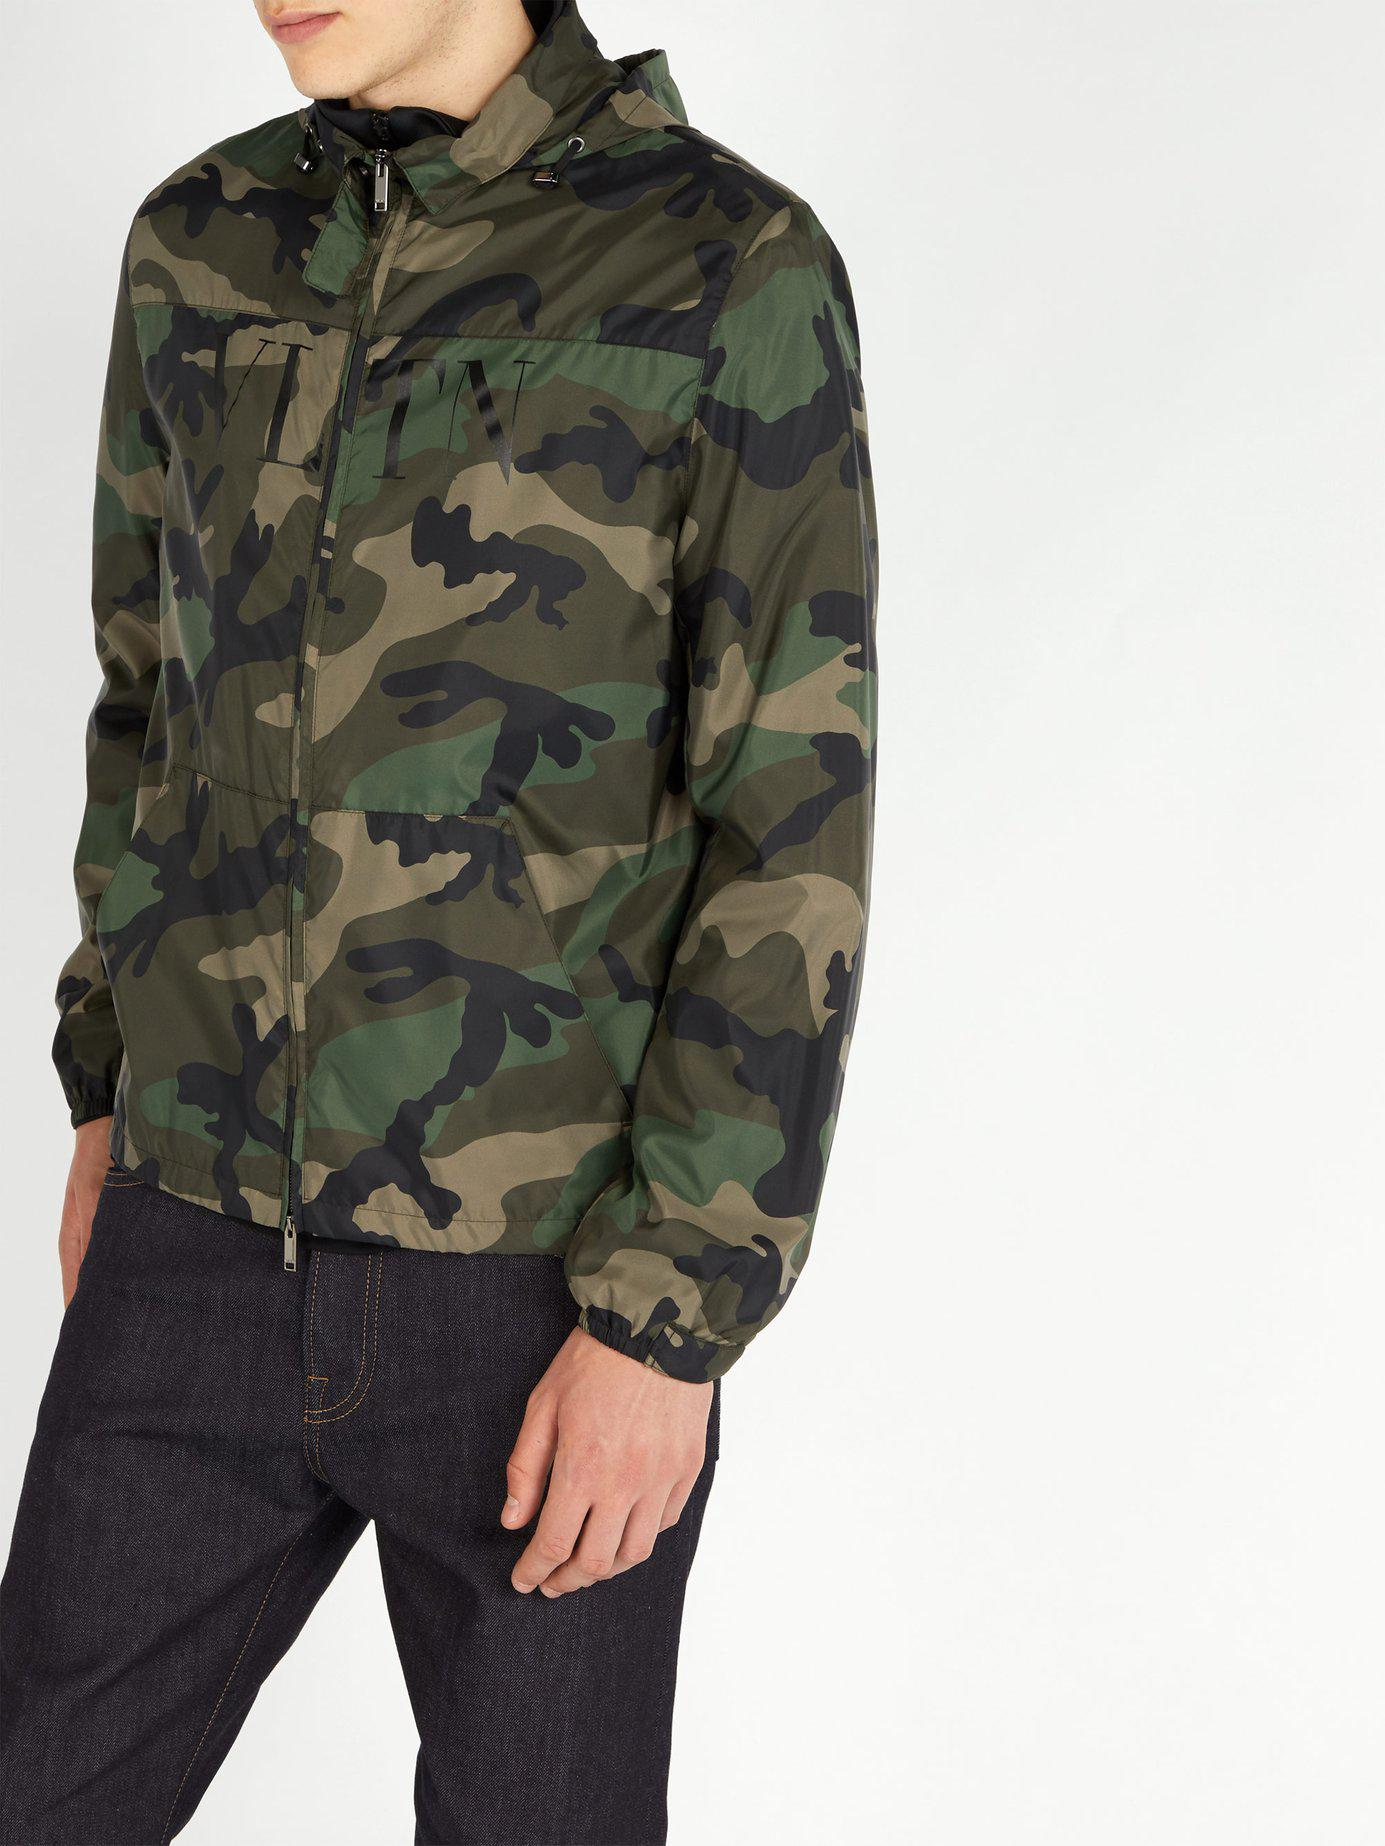 9415c75368ba9 Lyst - Valentino Camouflage Print Windbreaker Jacket in Green for Men